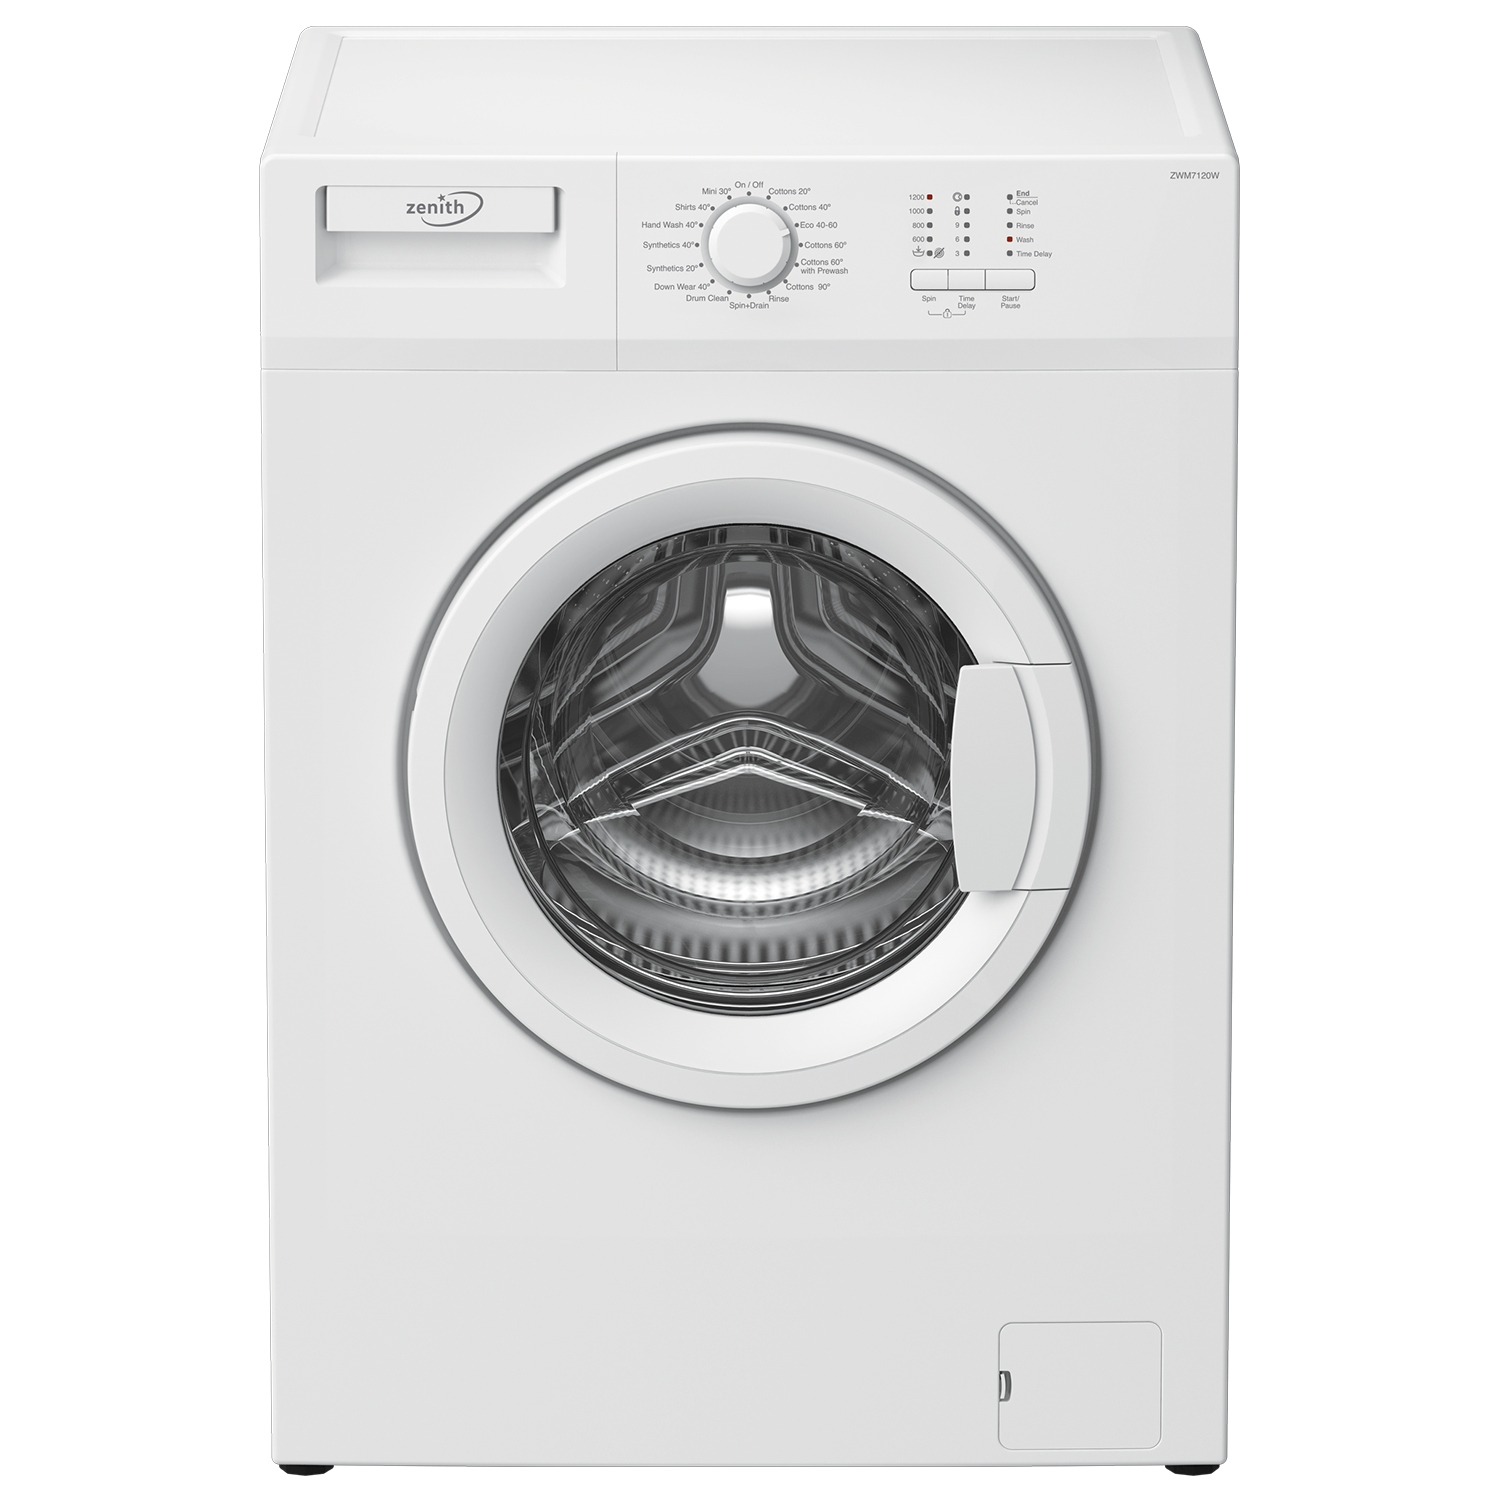 Zenith ZWM7120W 7kg 1200 Spin Slim Depth Washing Machine - White - 0